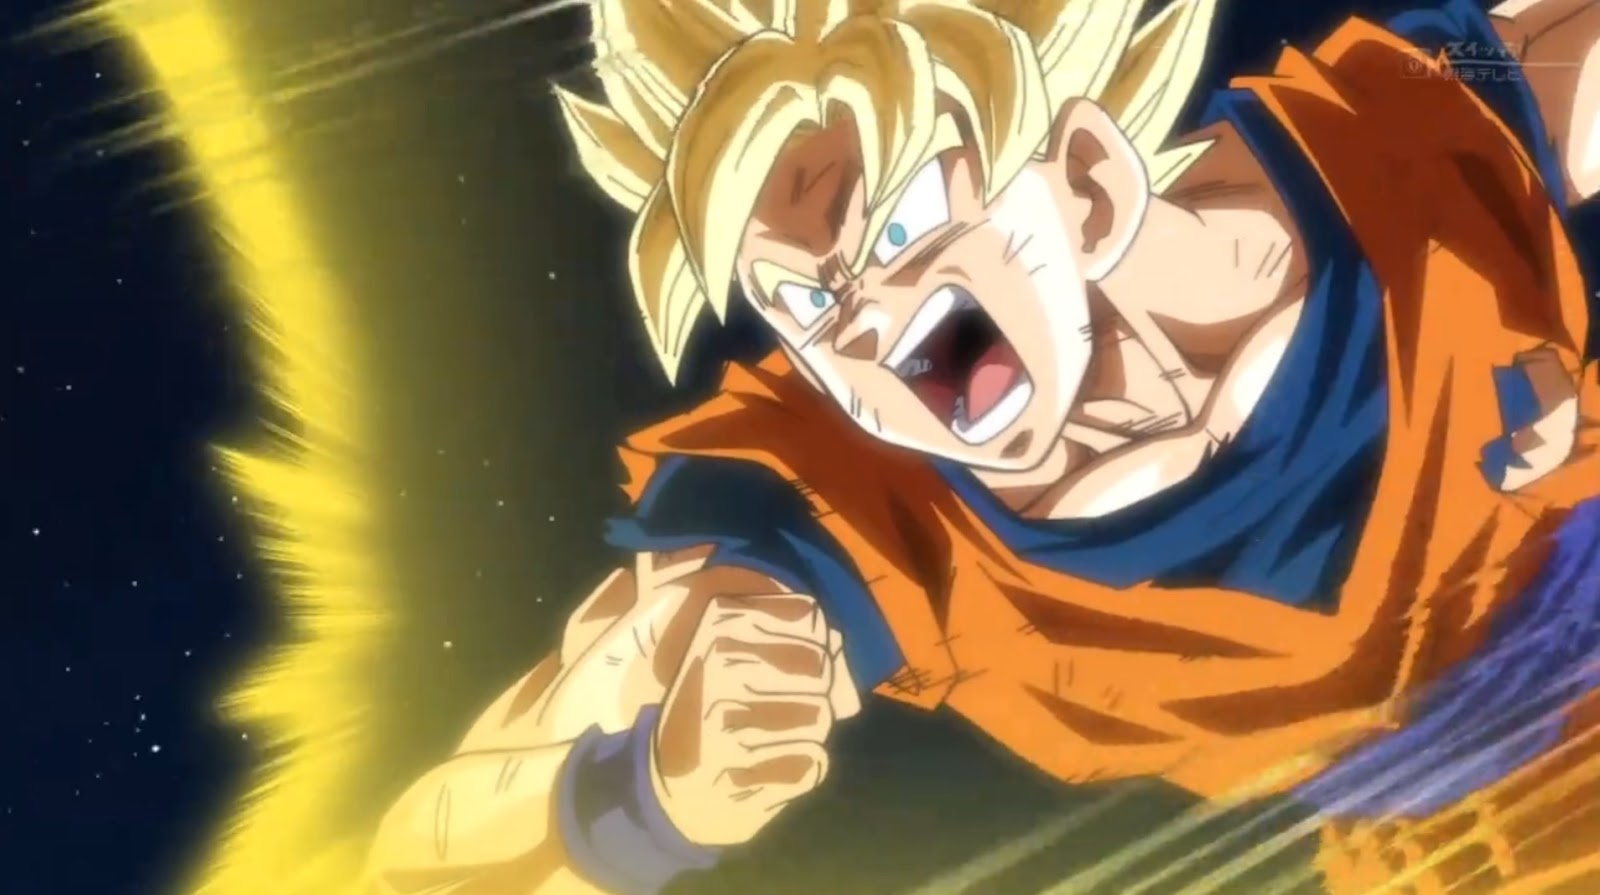 Dragon Ball Super: Episódio 13 – Ó Goku, supere o Deus Super Saiyajin